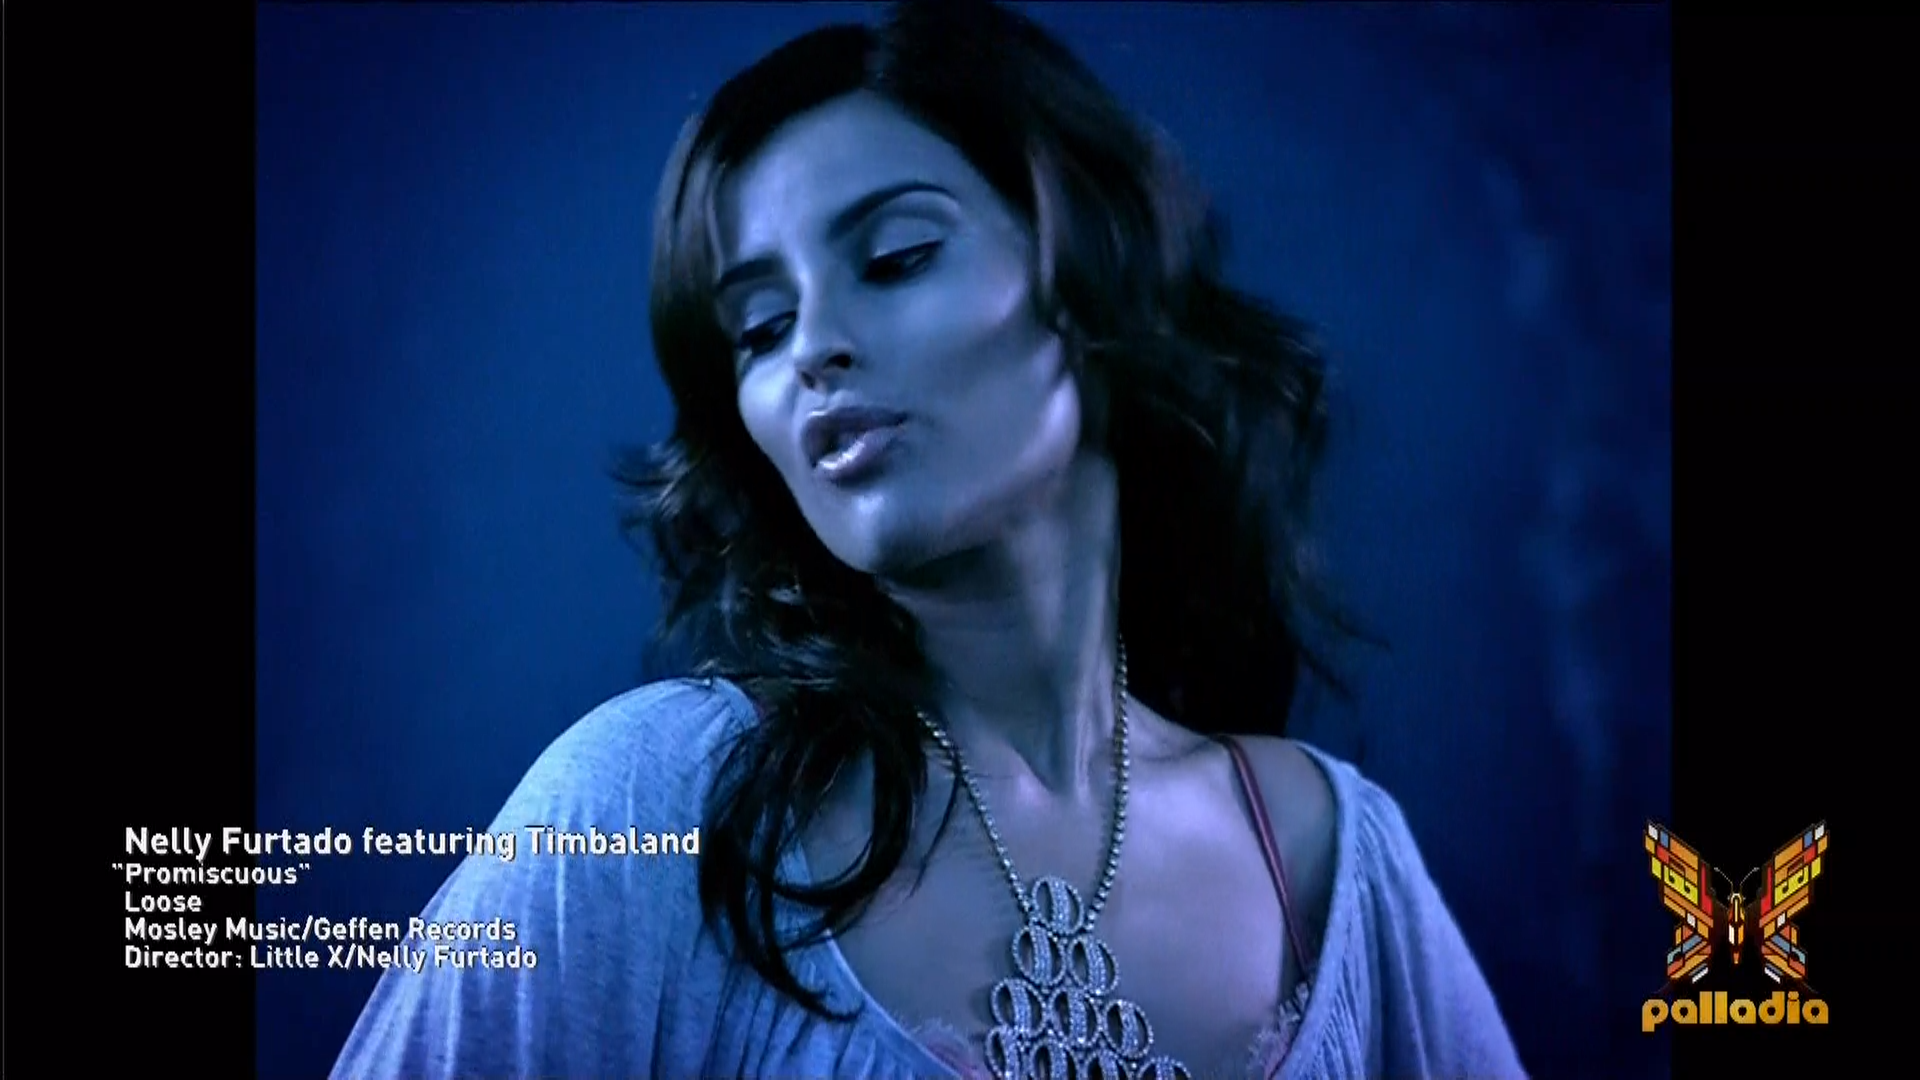 promiscuous nelly furtado featuring timbaland mp3